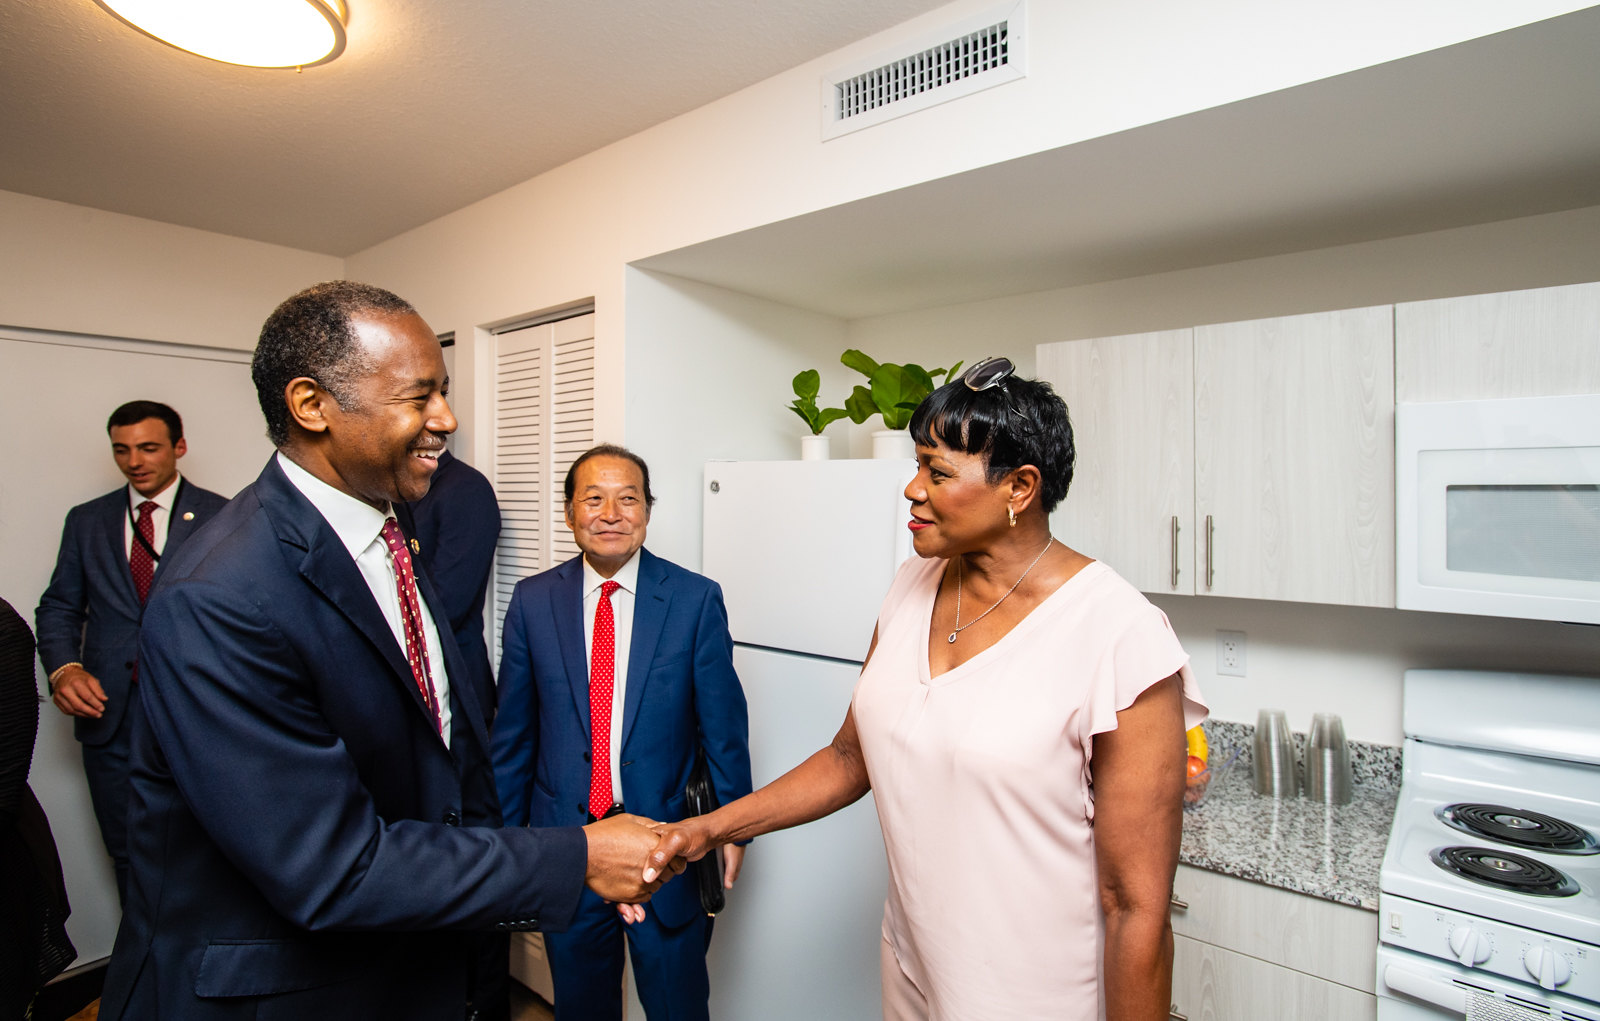 Community residents welcome Secretary Carson as he visits Opportunity Zones in Miami, FL